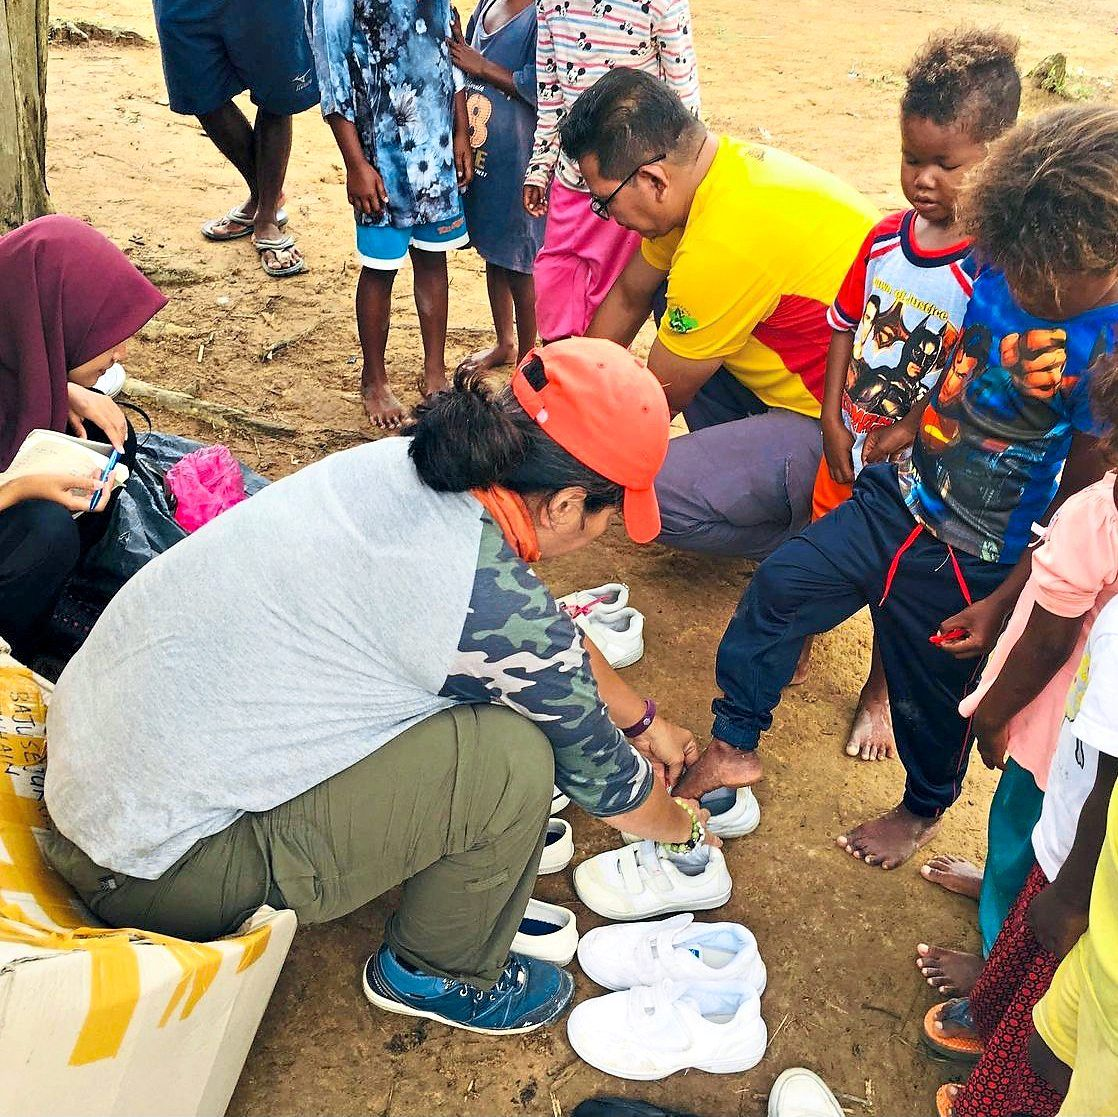 Enaz (in white) collected preloved school shoes for the Orang Asli children at Kampung TanHain in Royal Belum State Park, Perak, in an earlier project. Photo: Projek Asal